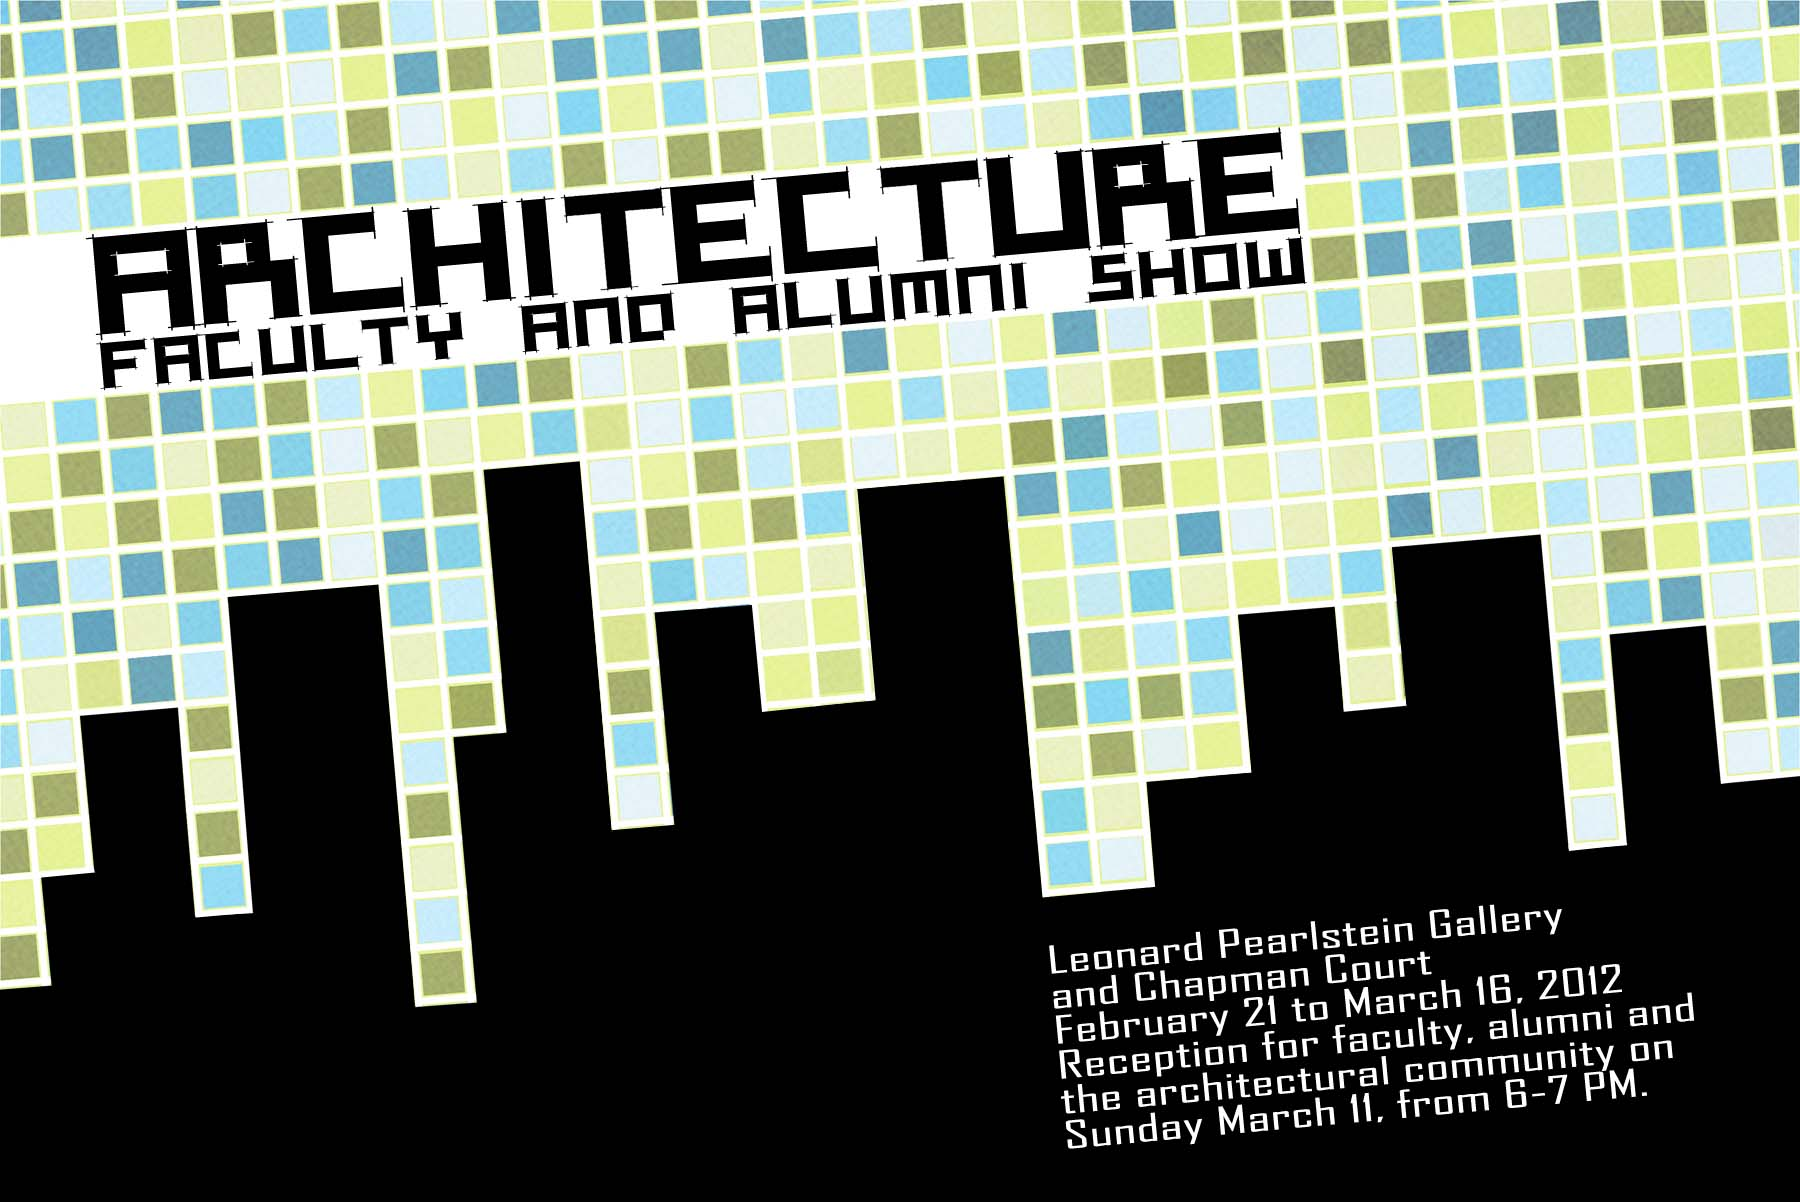 Postcard for Faculty and Alumni Exhibit